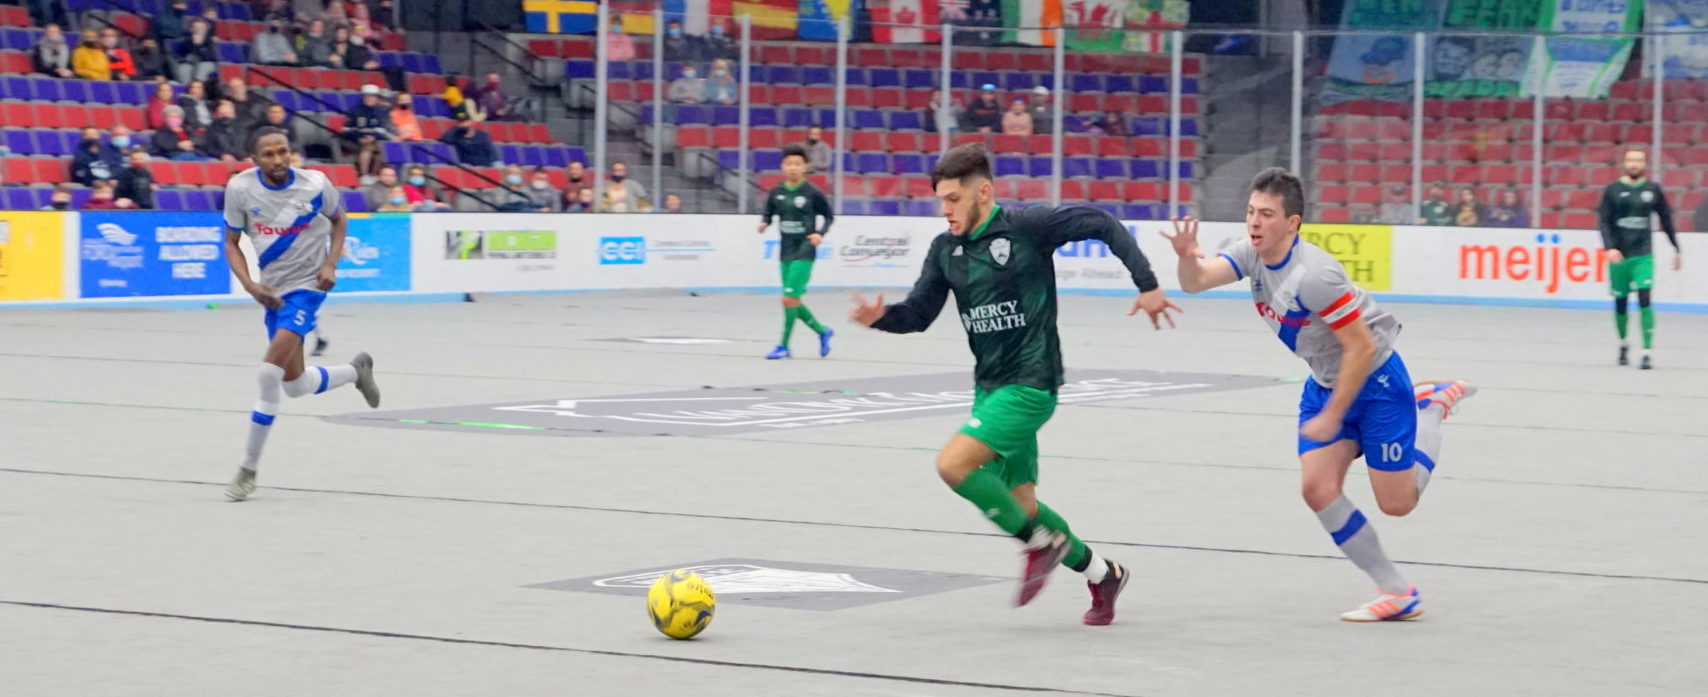 Muskegon Risers rally with three late goals to capture a dramatic 7-5 victory over Fort Wayne in their indoor season opener